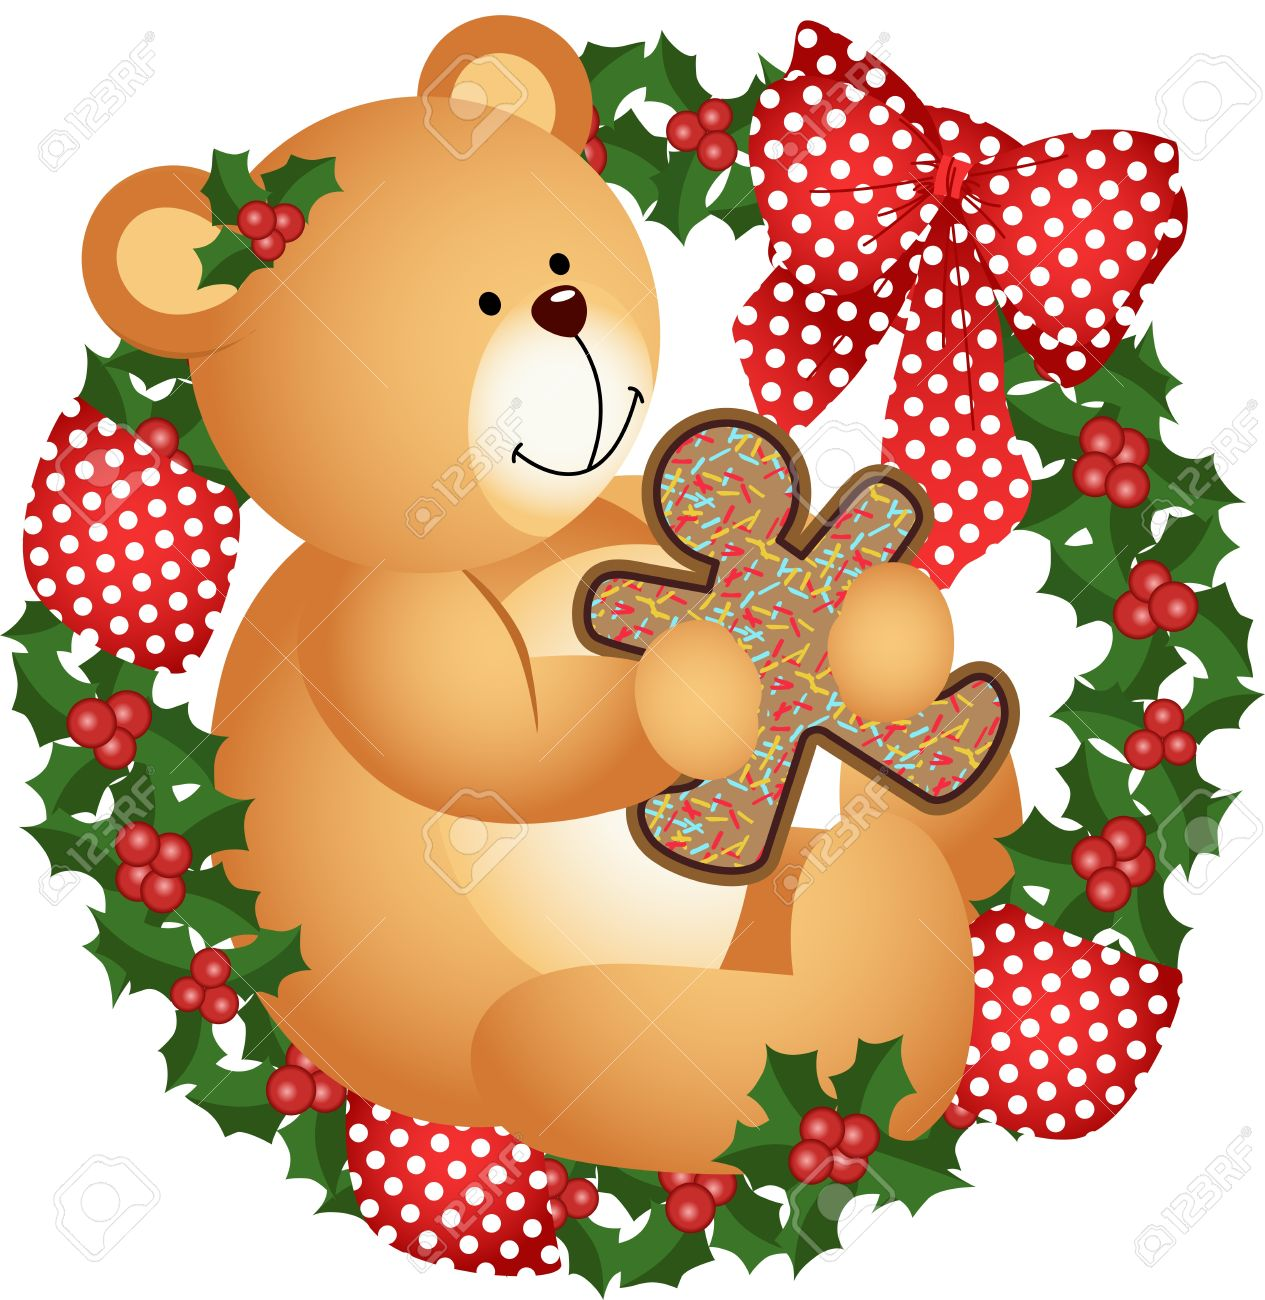 Christmas Teddy Bear With Cookie In Crown Royalty Free Cliparts.